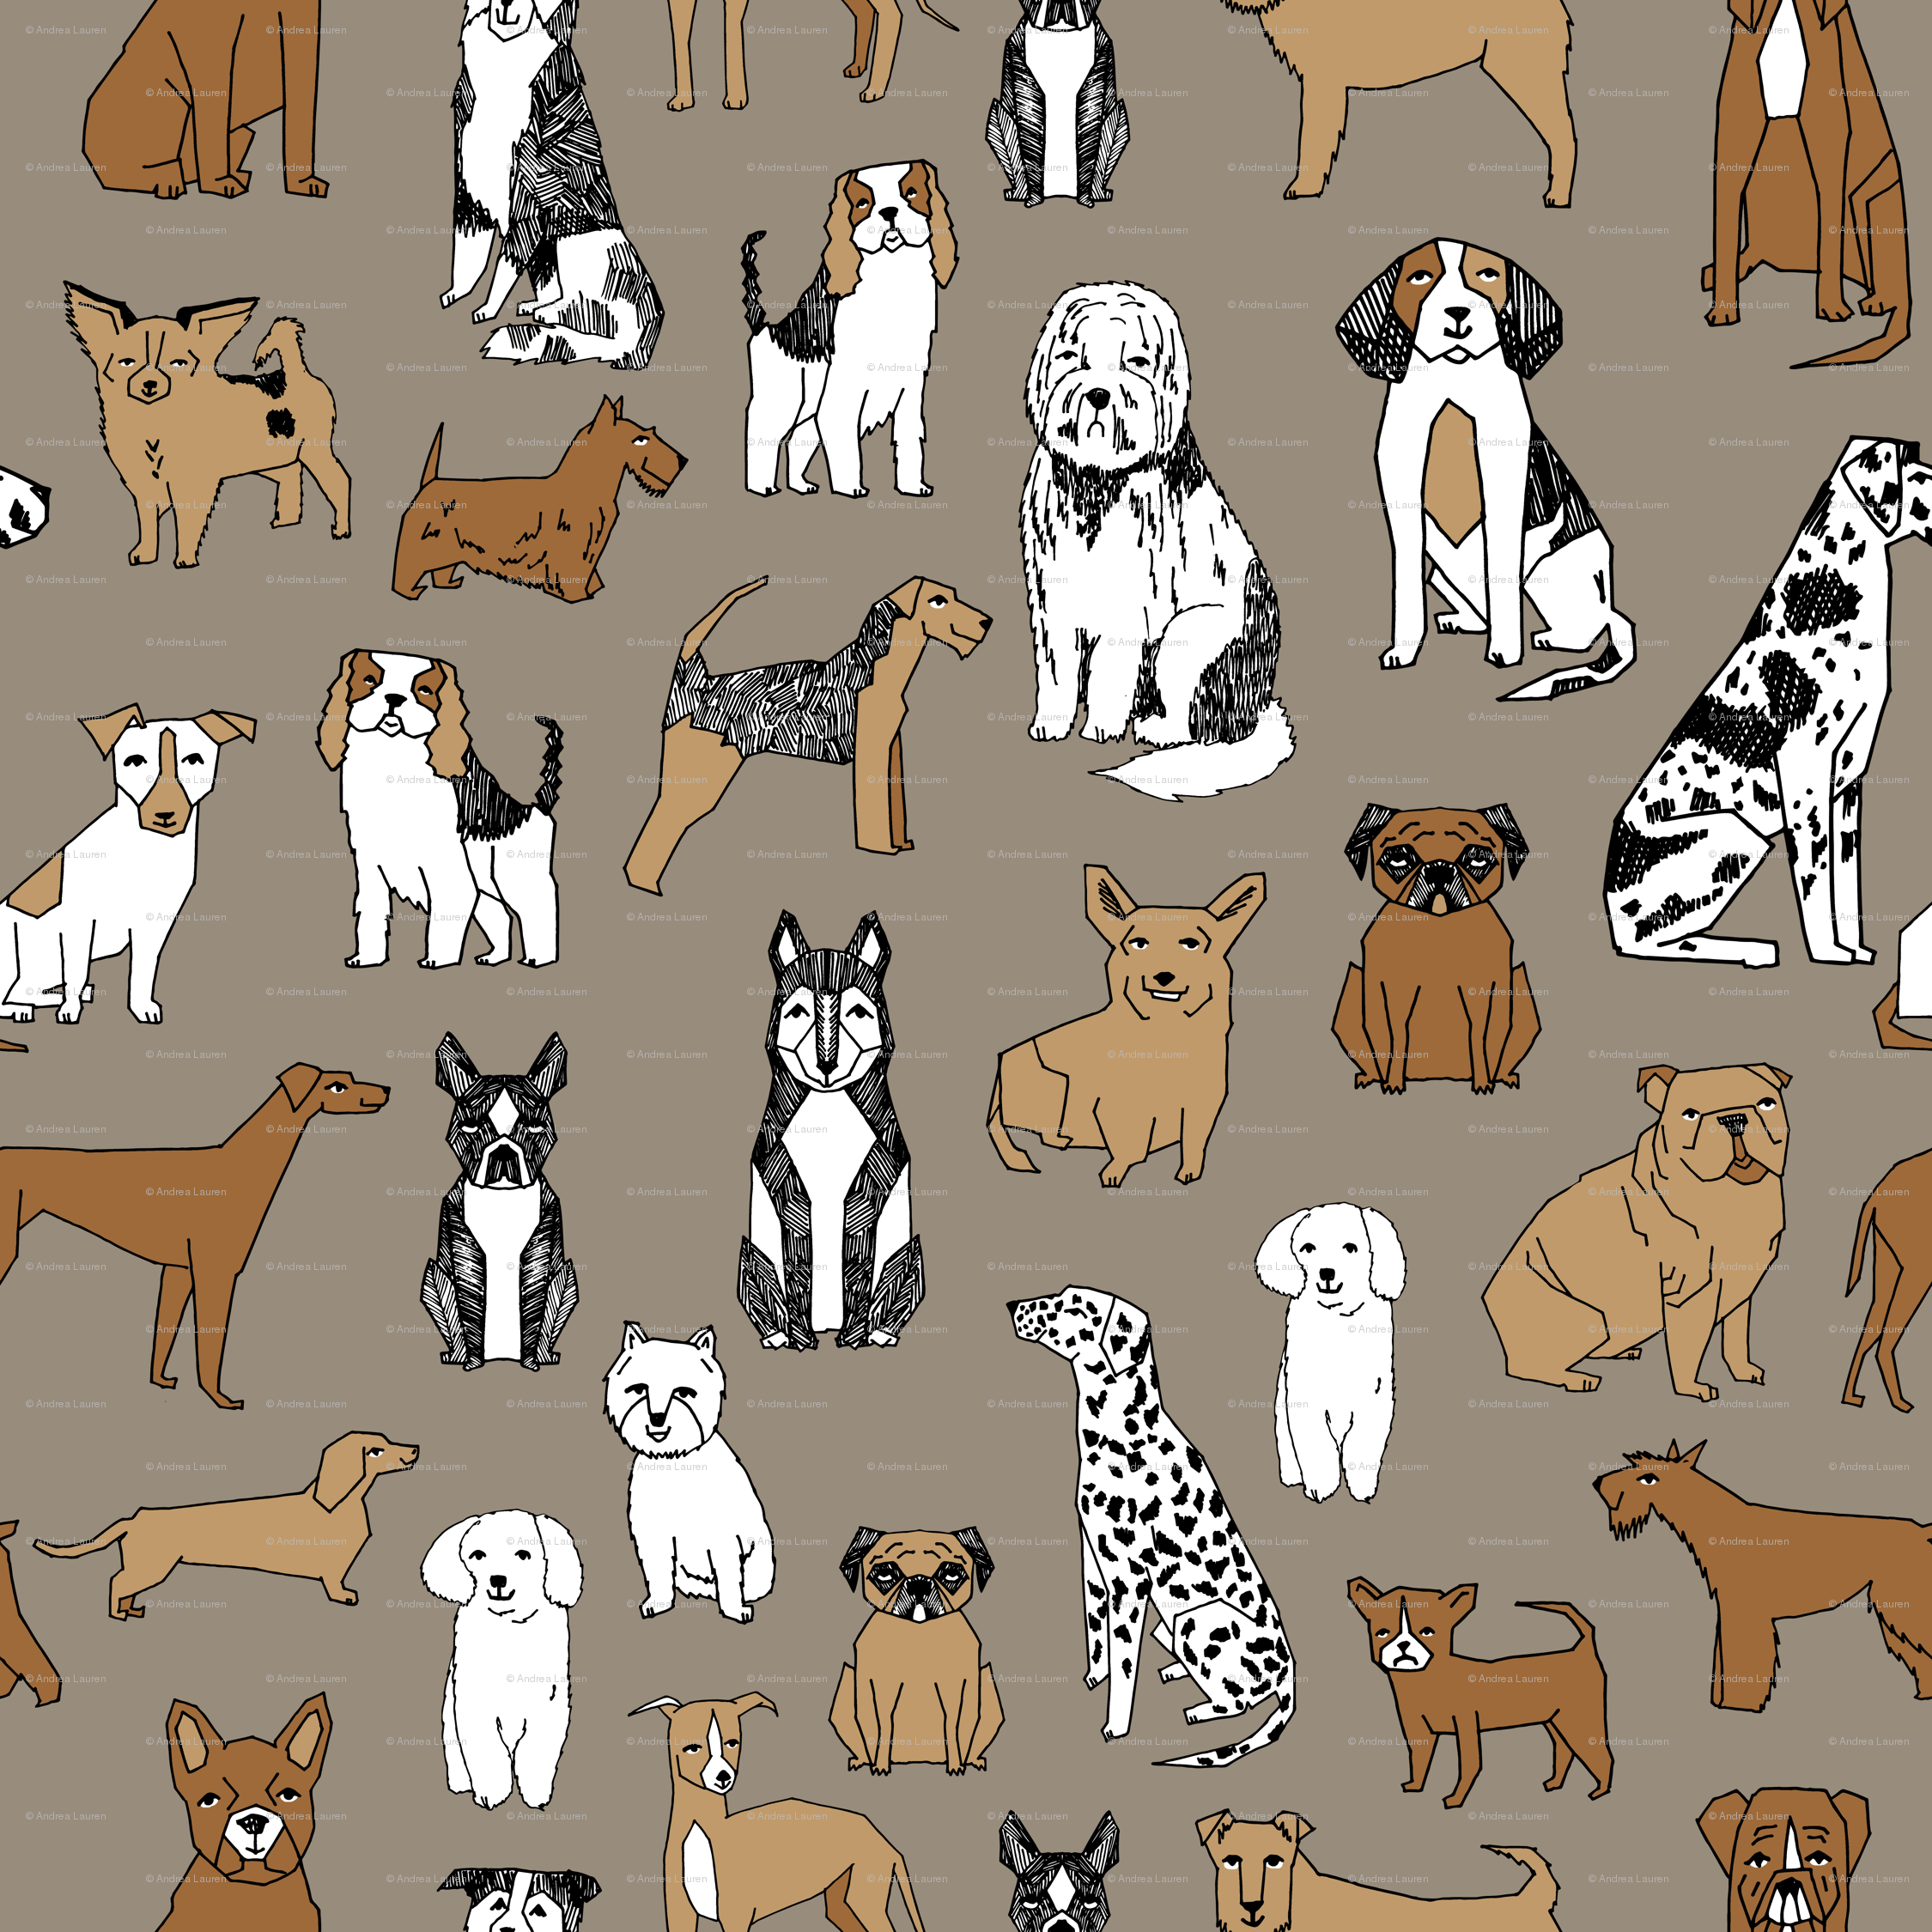 38 Wallpaper With Dogs Printed On It On Wallpapersafari